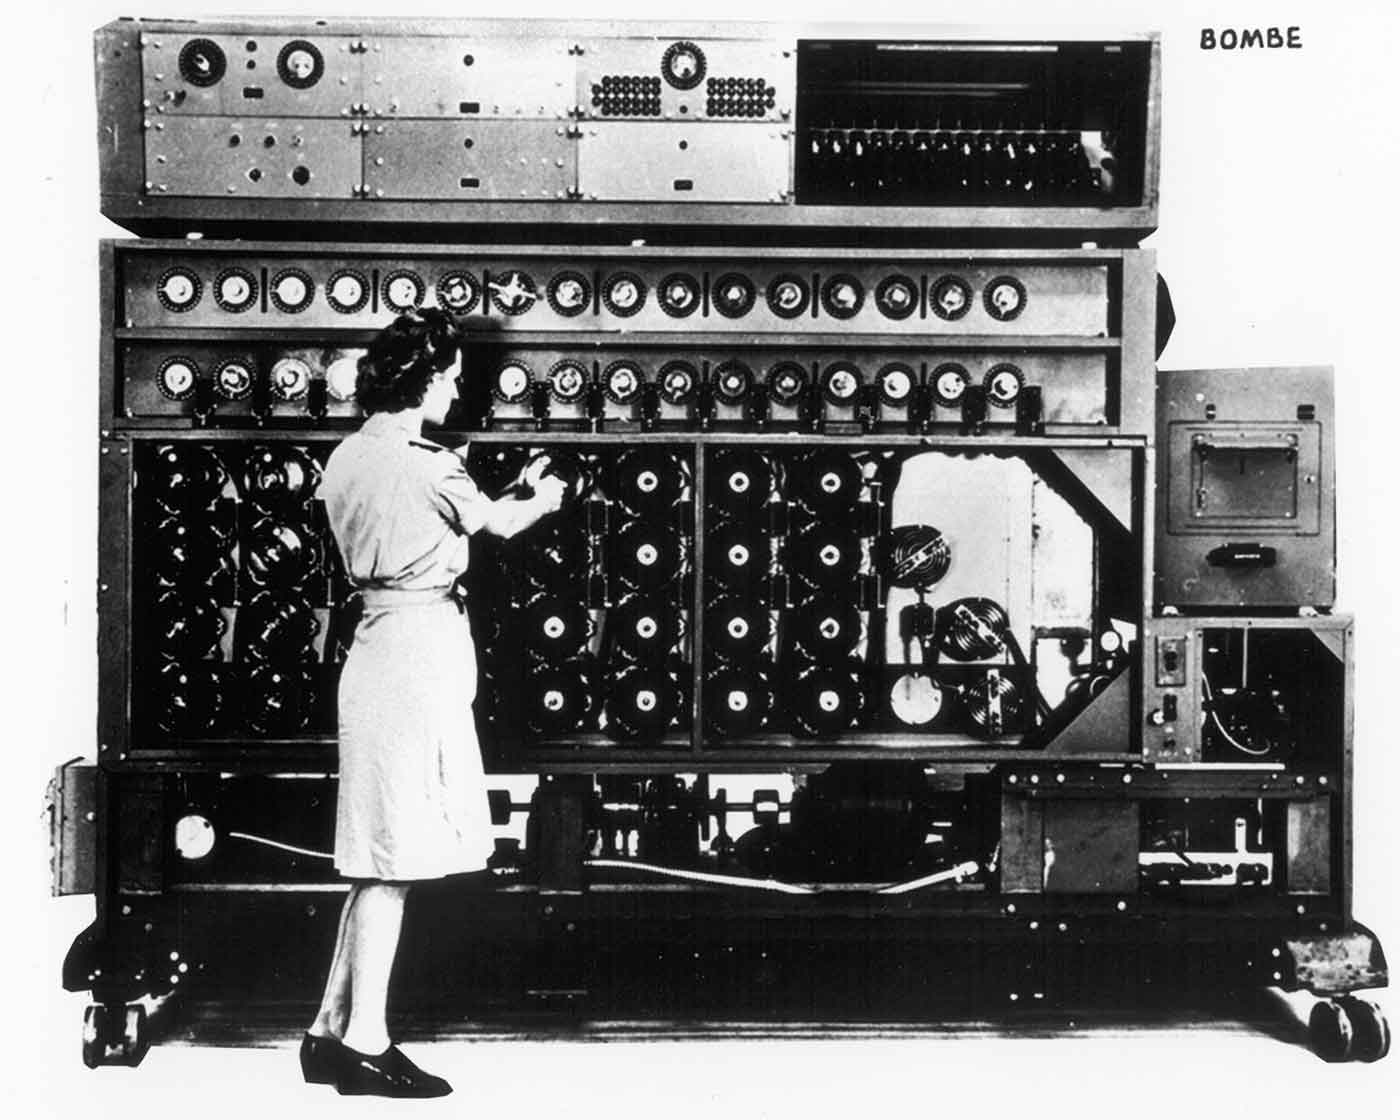 Bombe computing device.